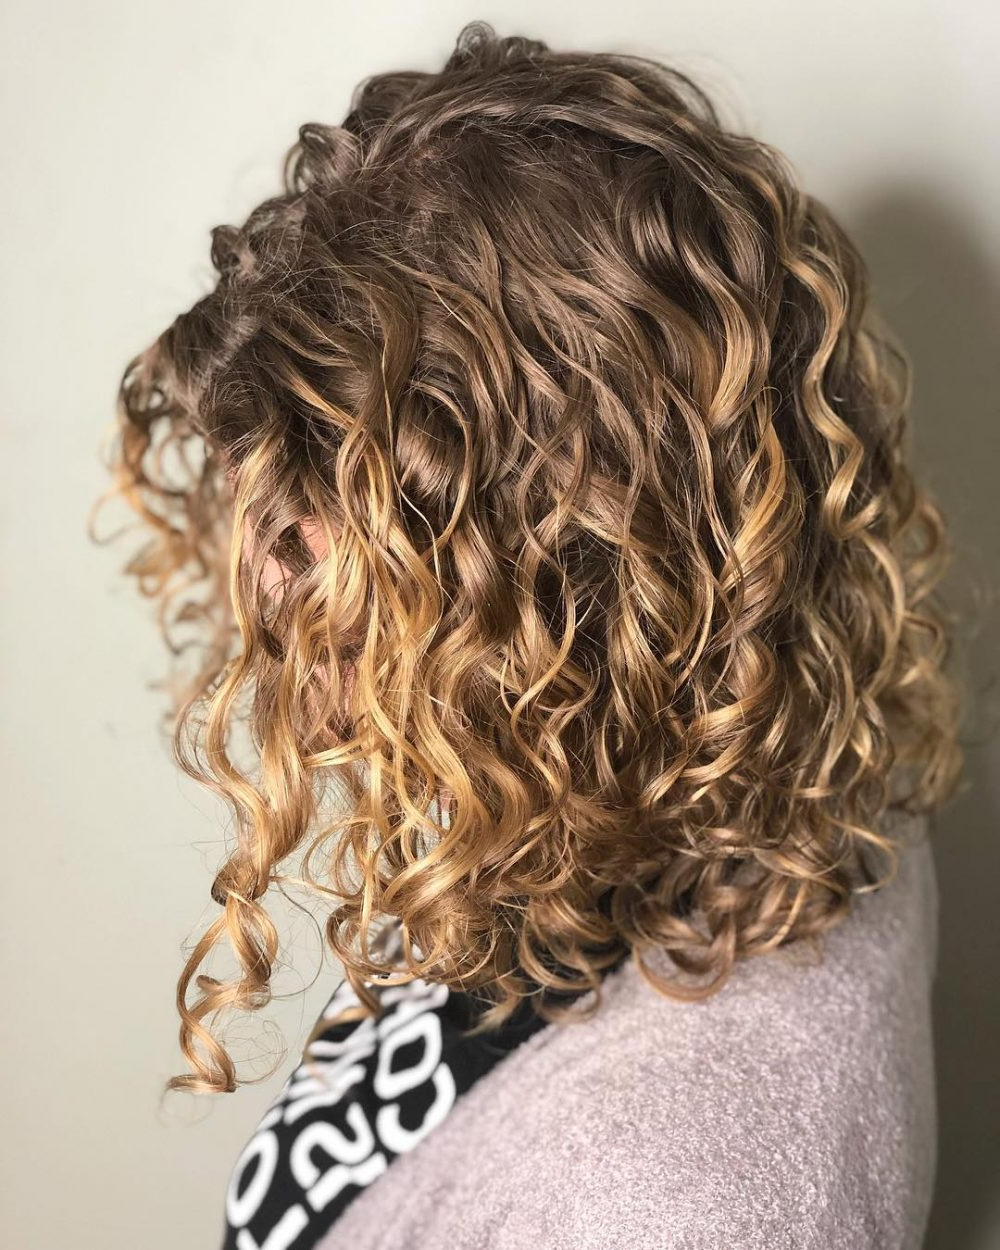 30 Gorgeous Medium Length Curly Hairstyles For Women In 2019 In Current Naturally Curly Medium Haircuts (View 12 of 20)